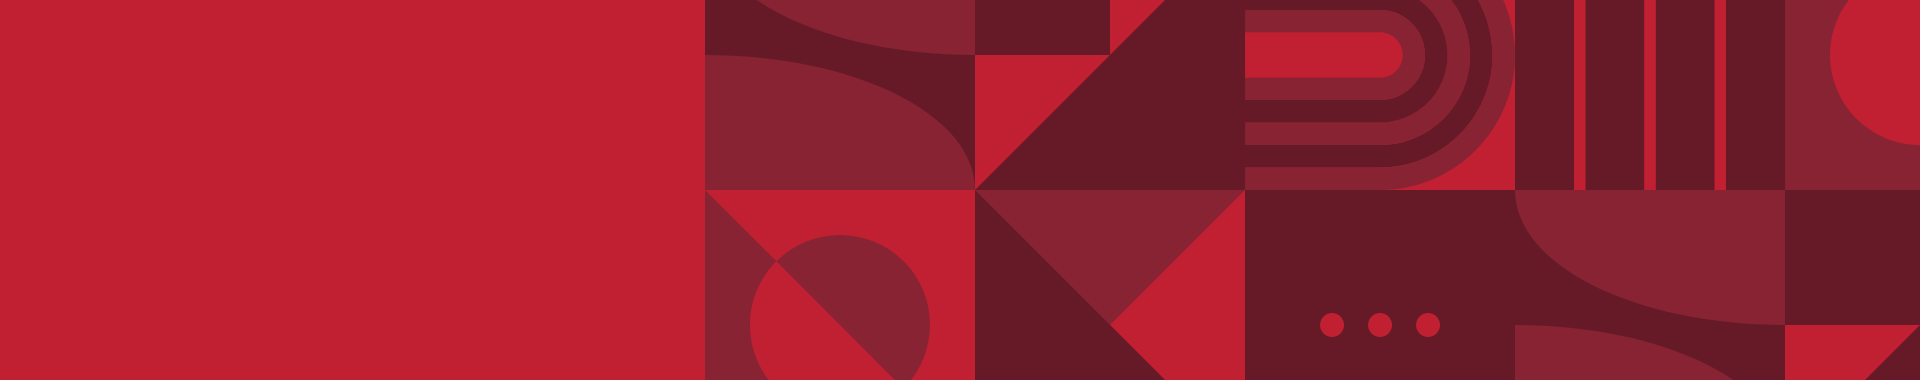 A red patchwork of abstract shapes